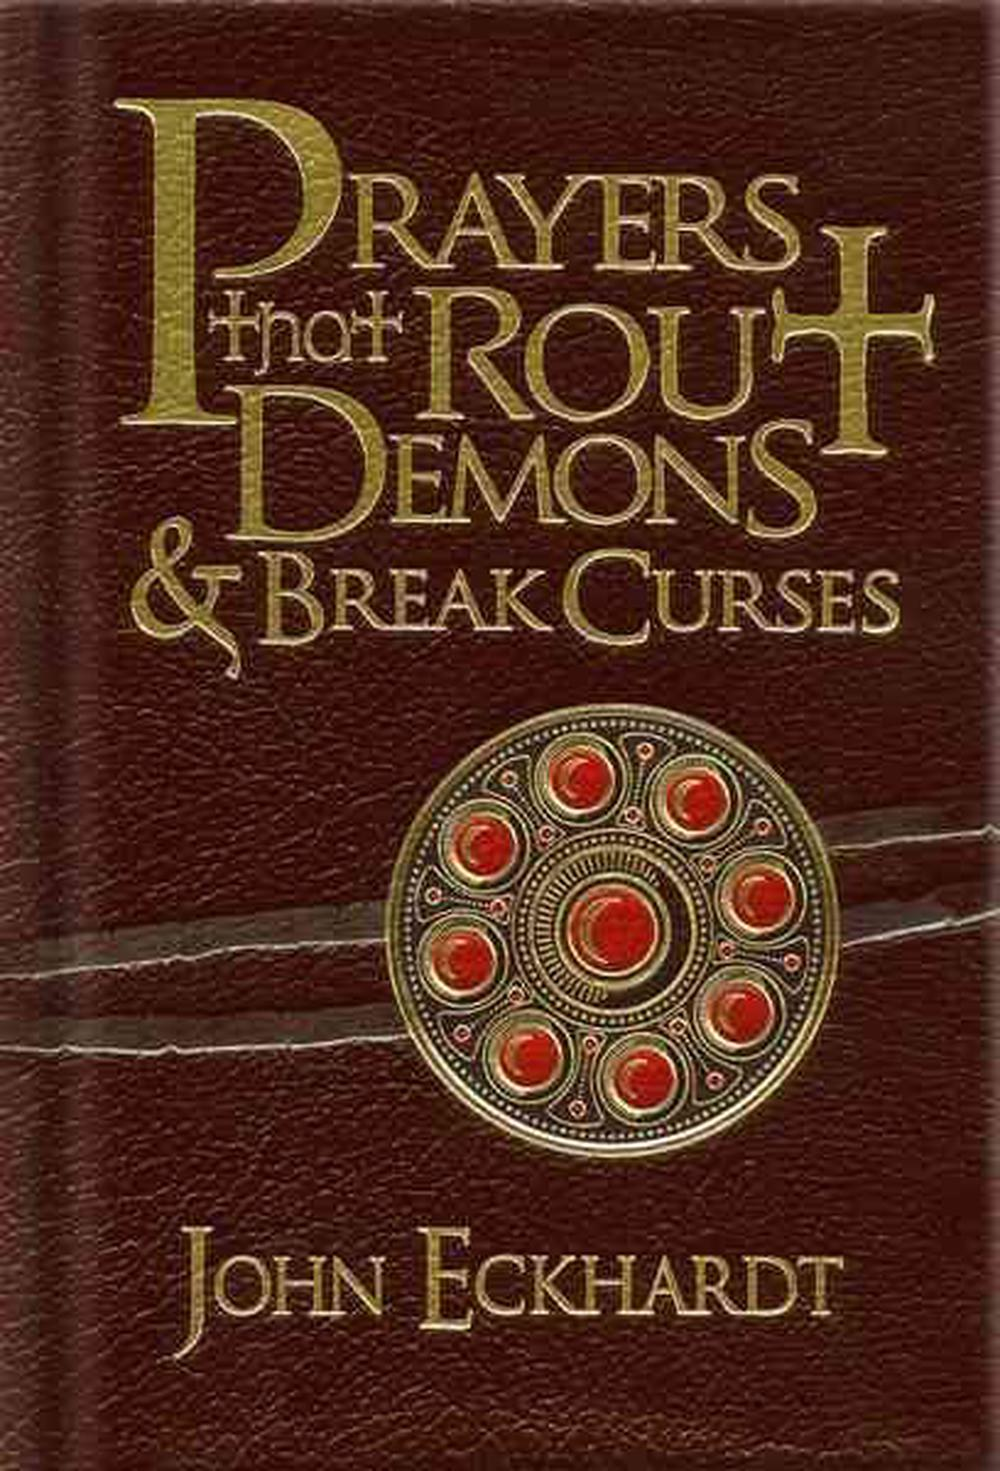 prayers that rout demons & break curses by john eckhardt (english